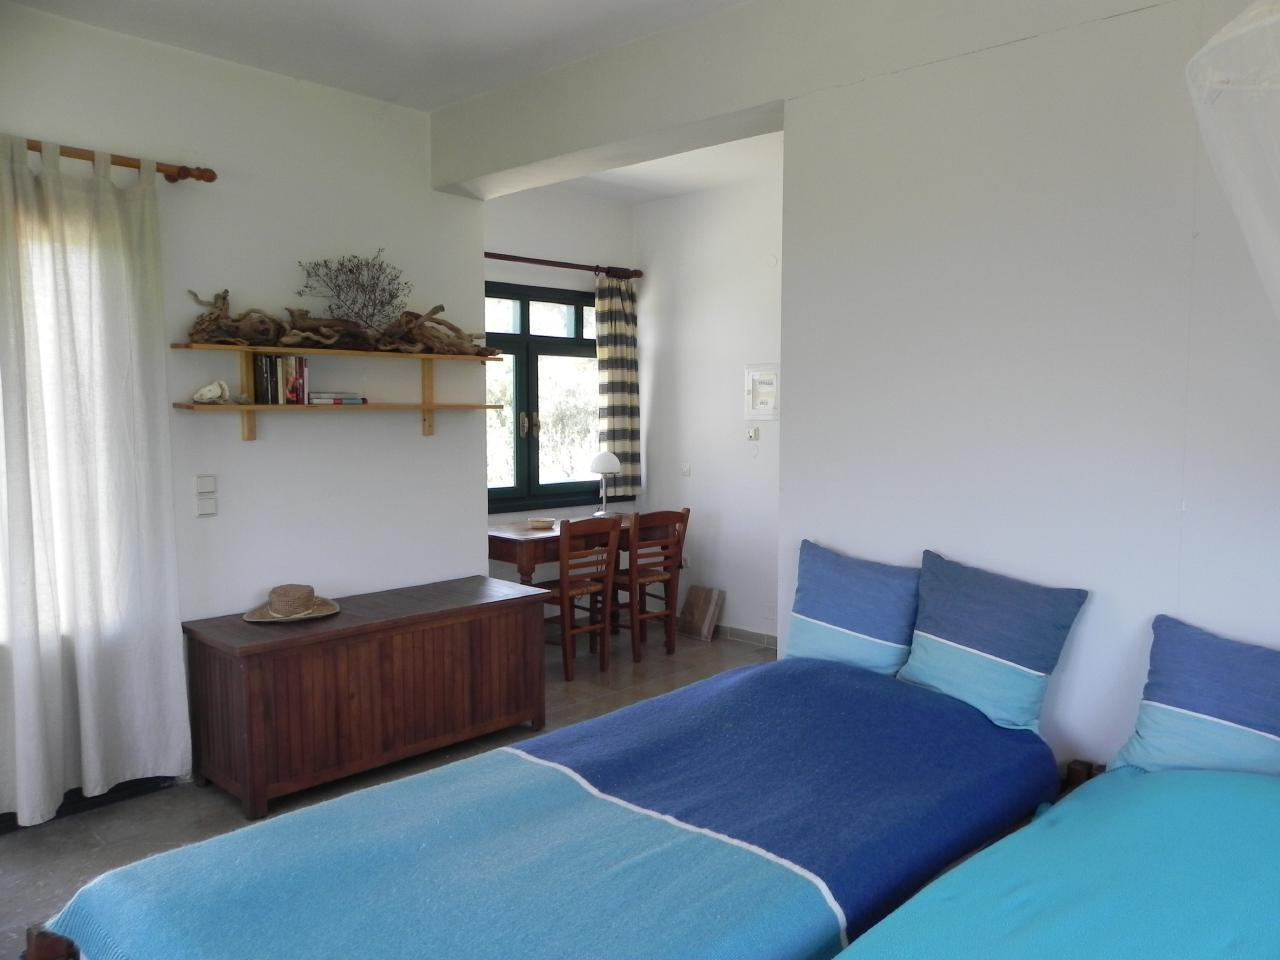 Holiday house Olive Garden - Oase der Ruhe (2167110), Vafeios, Lesbos, Aegean Islands, Greece, picture 2